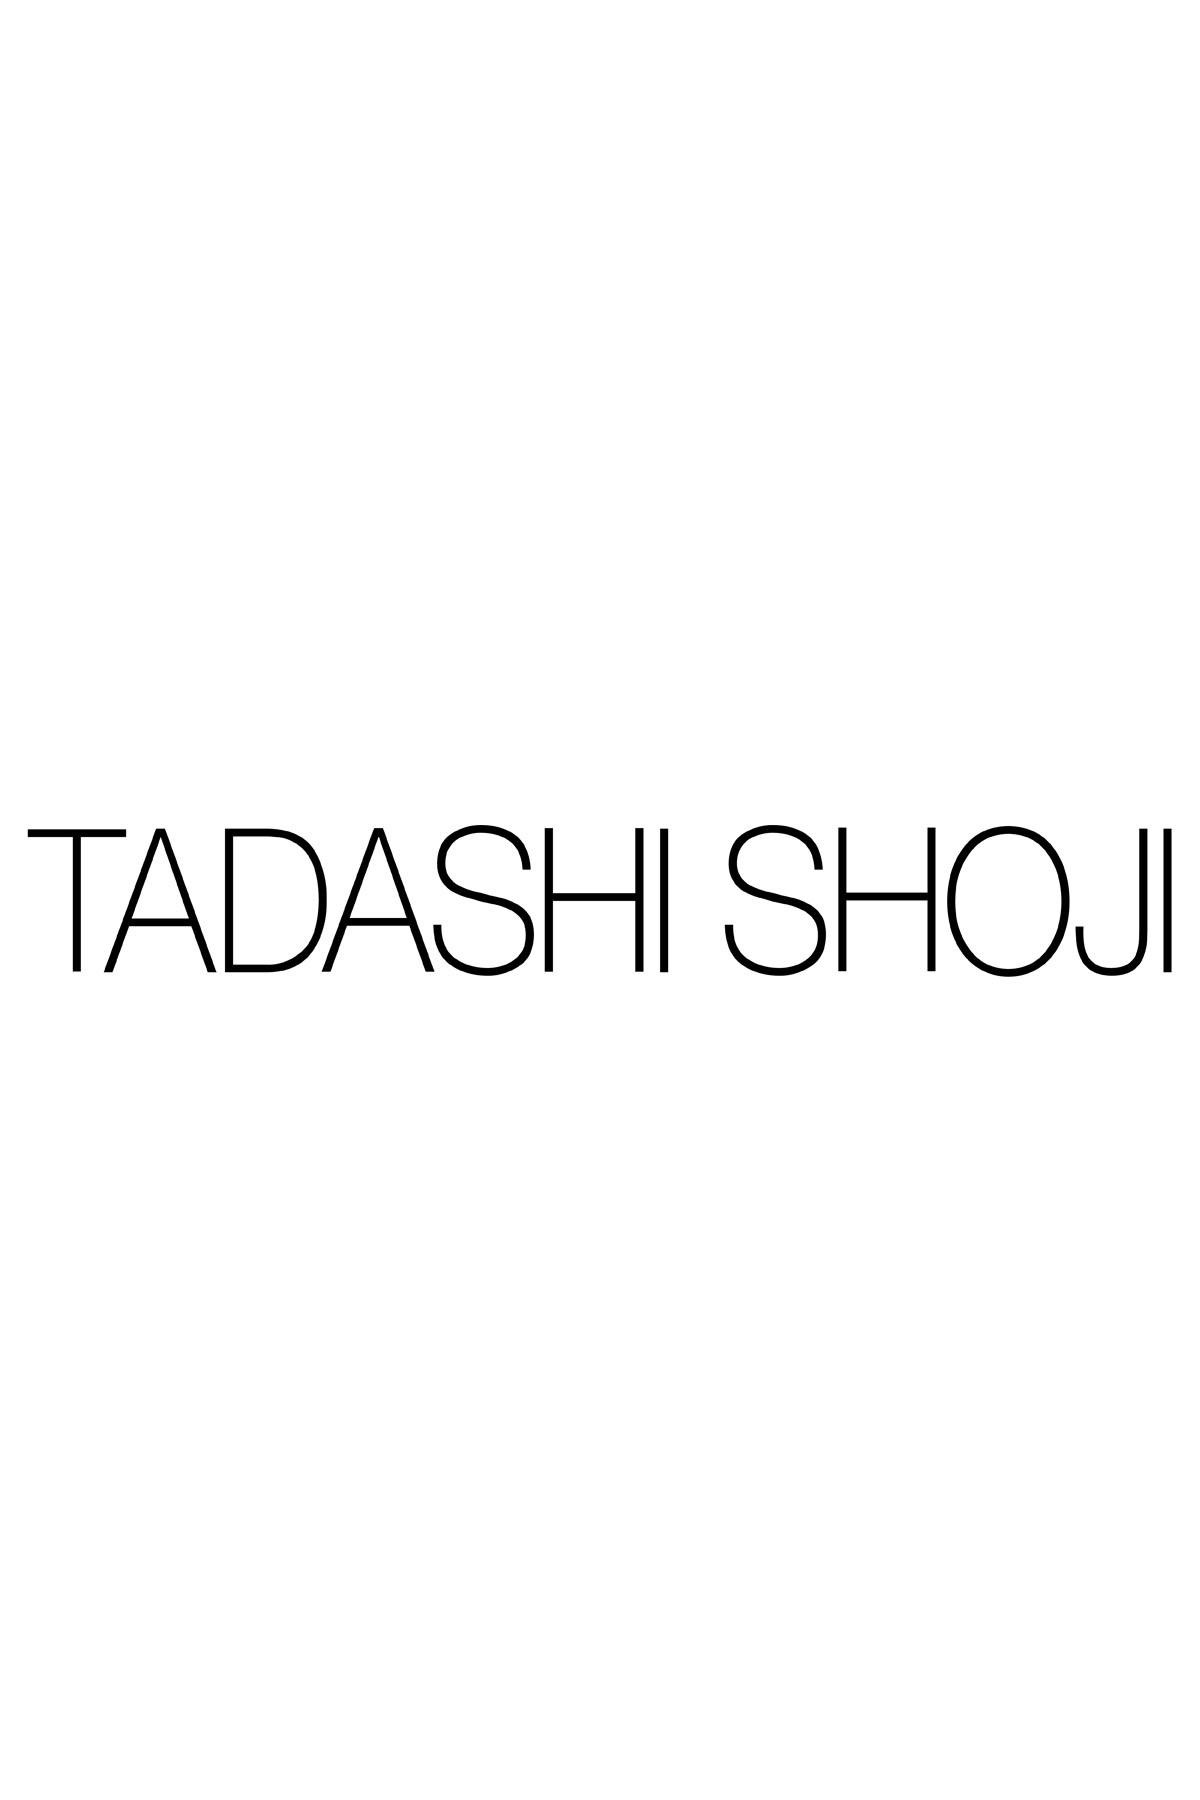 Tadashi Shoji - Corded Embroidery on Tulle Contrast Waist V-Neck Sheath Dress - Detail